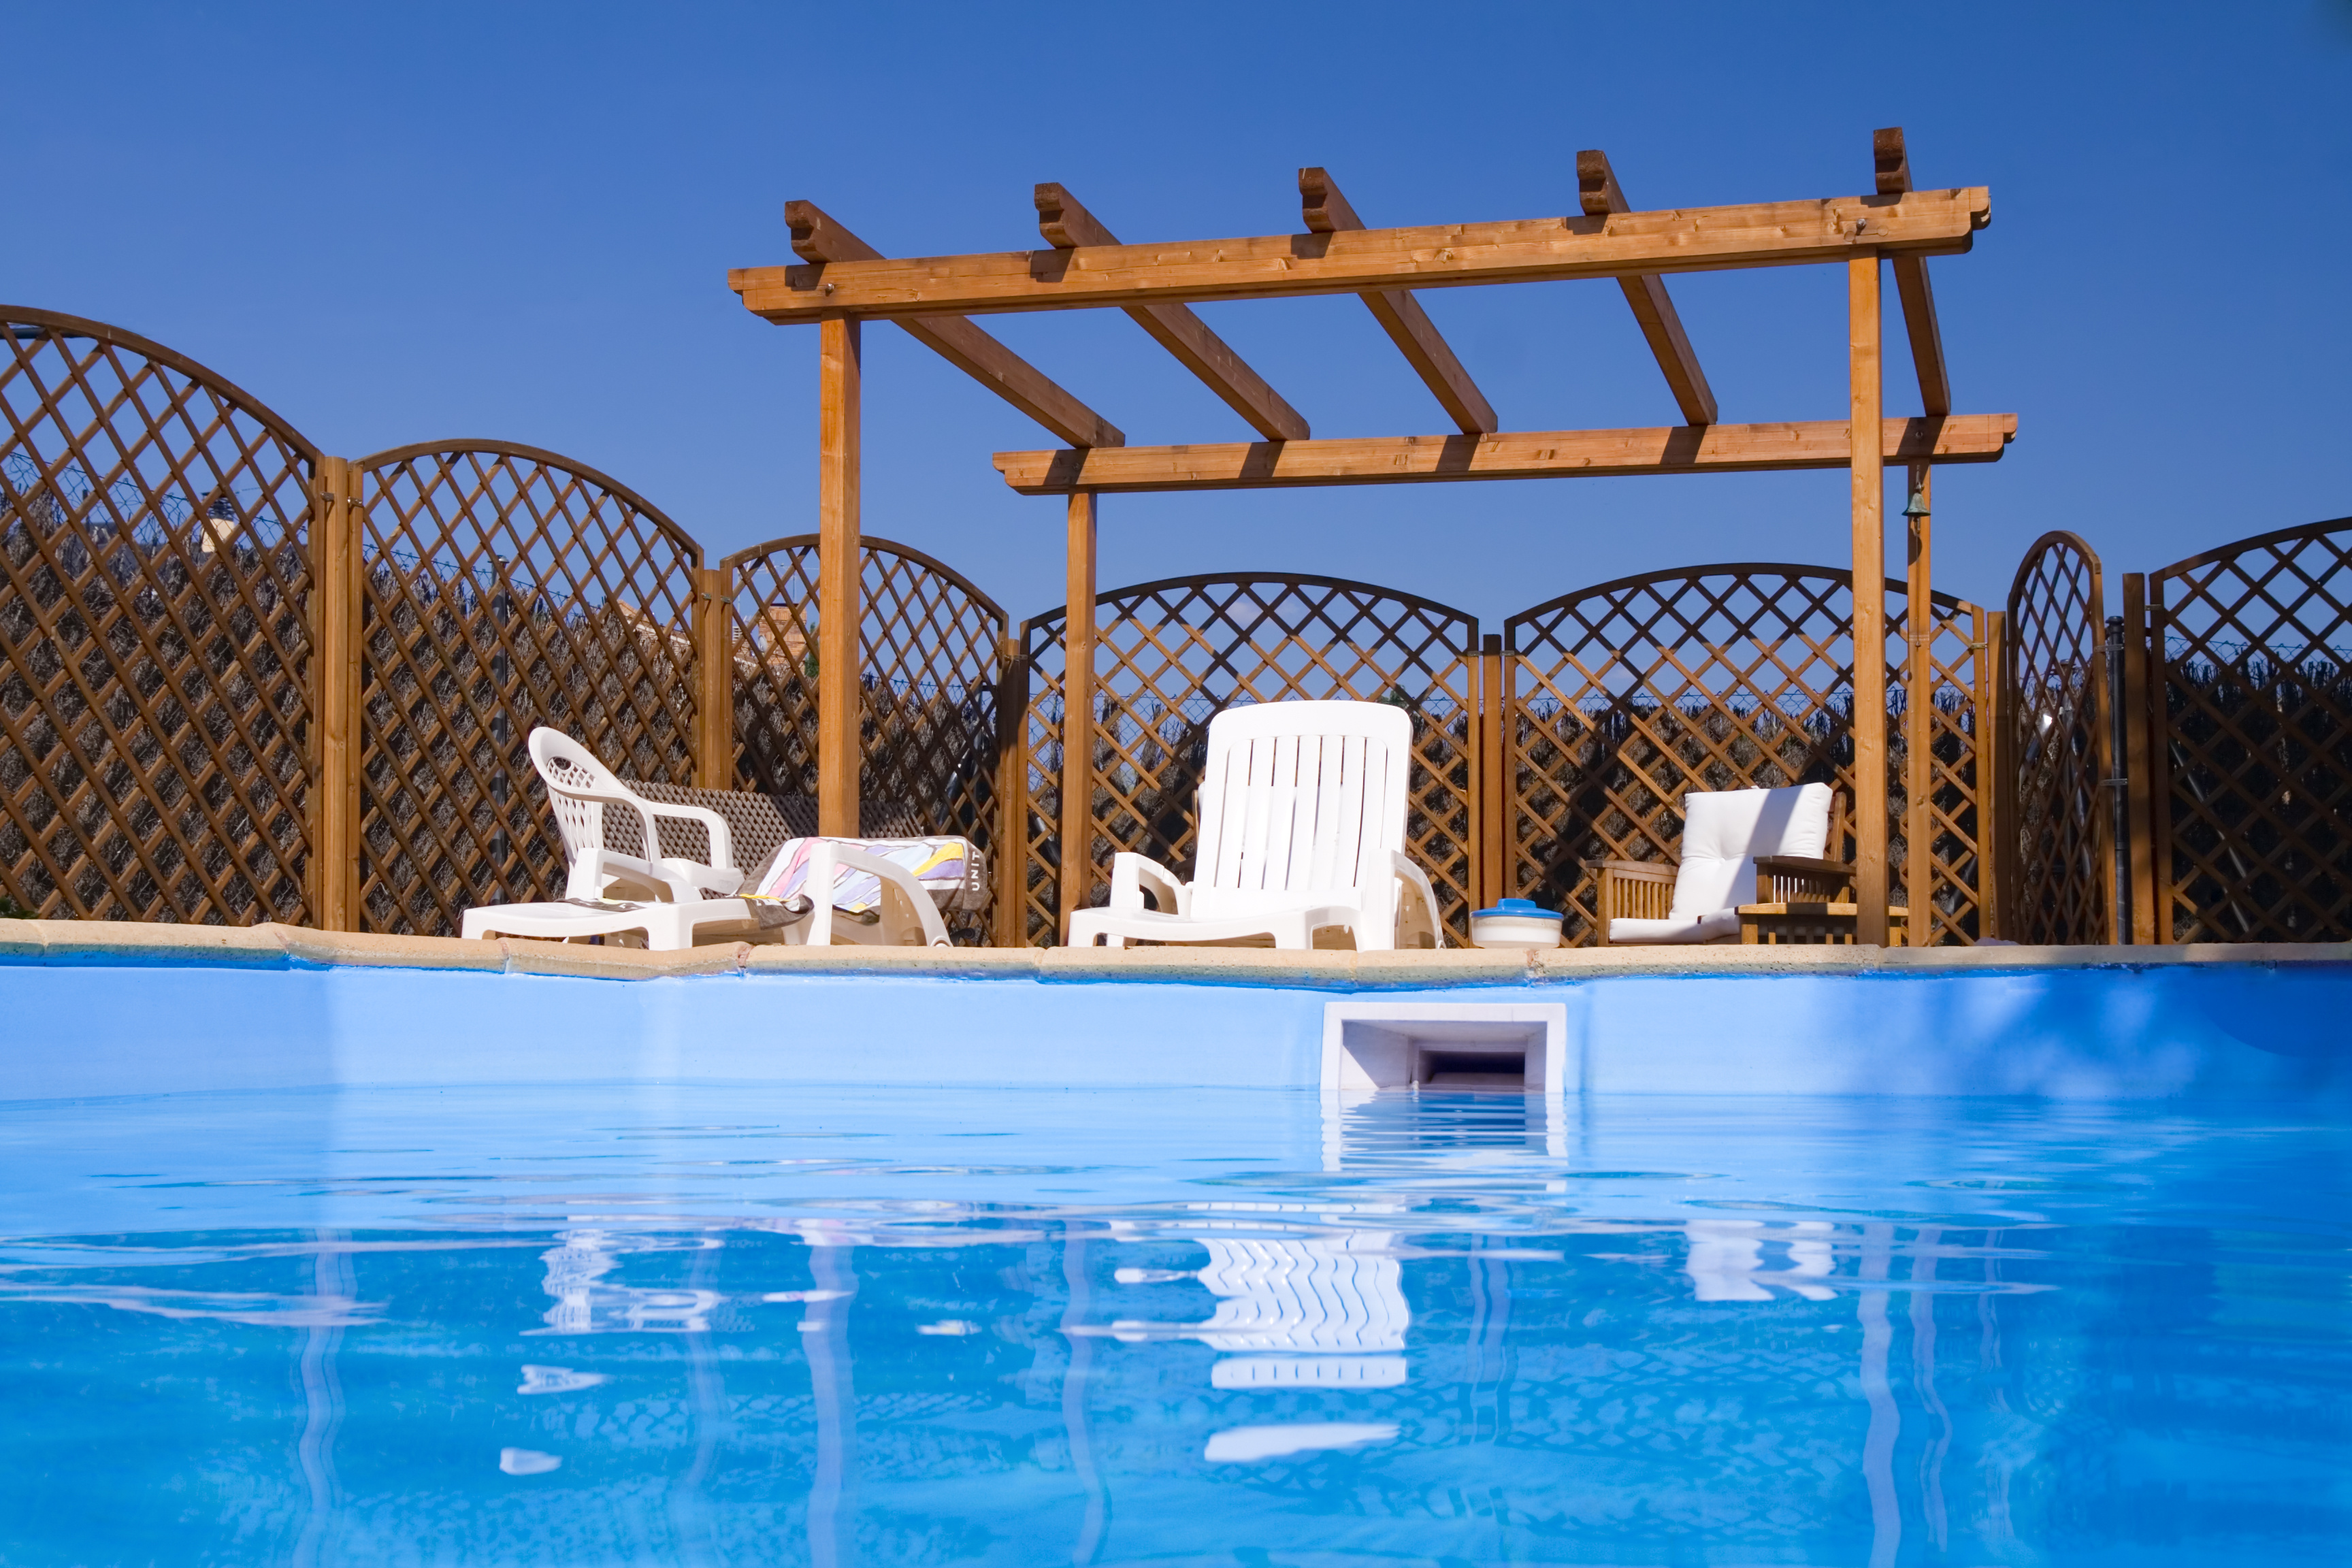 Maryland laws for swimming pool fences and gates ...